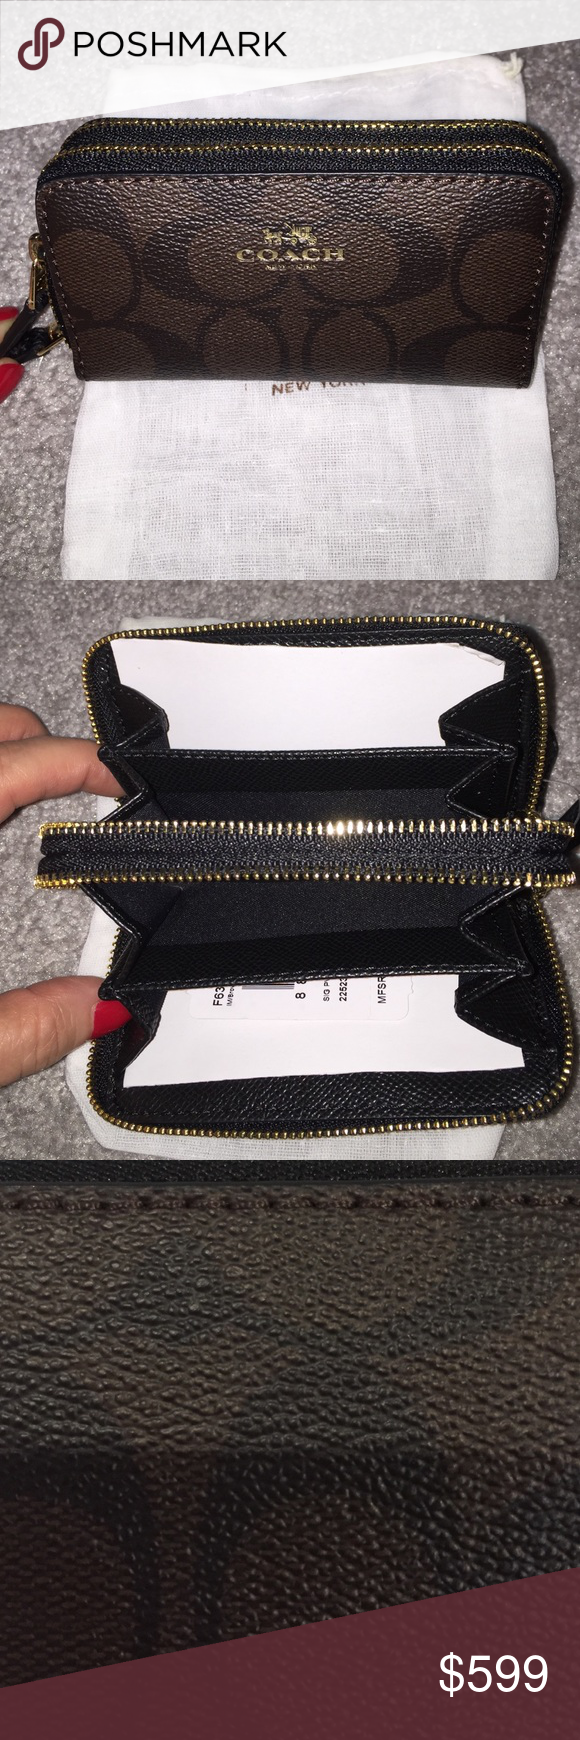 COACH Signature Double Zip Coin Case/Card Wallet COACH Signature PVC Small Double Zip Coin Case/Card Wallet NWT   NO TRADES. Retail $95 plus tax.   Size is a little over 4 1/2 by approx 2.5 Coach Accessories Key & Card Holders